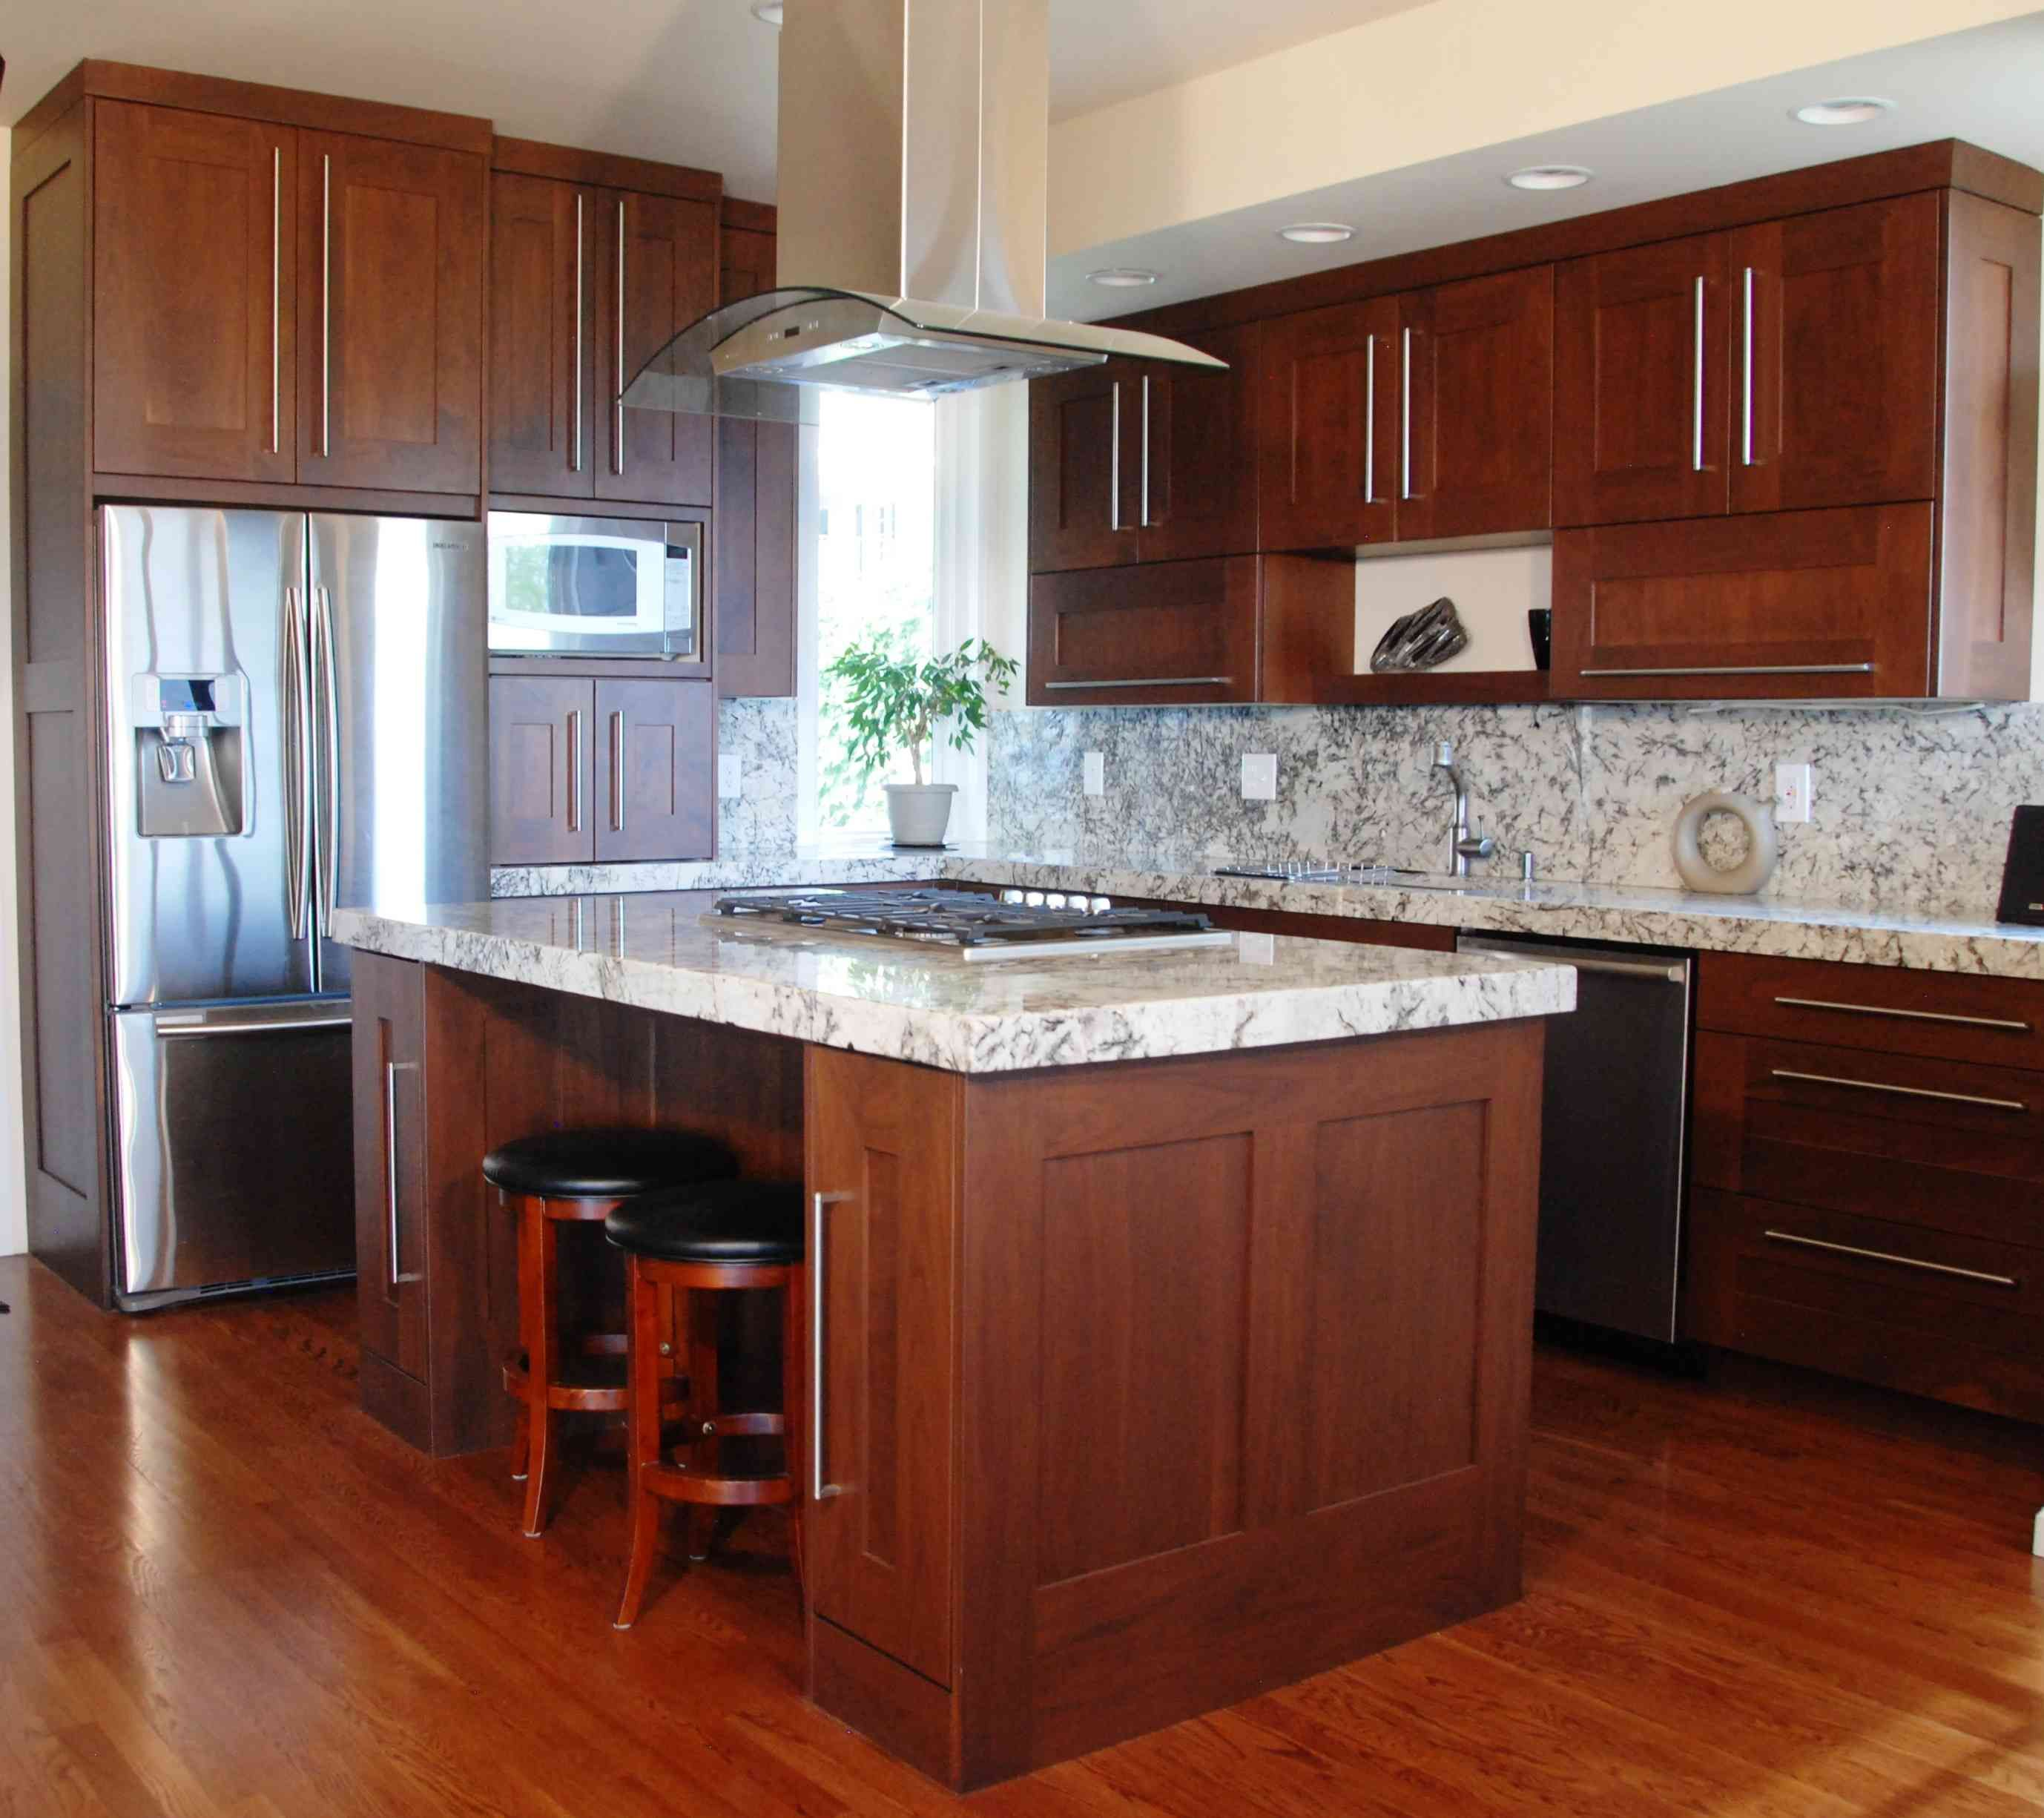 Kitchen Cabinets Island Shelves Cabinetry White Walnut: Cherry Wood Cabinets With White Granite Counters And White